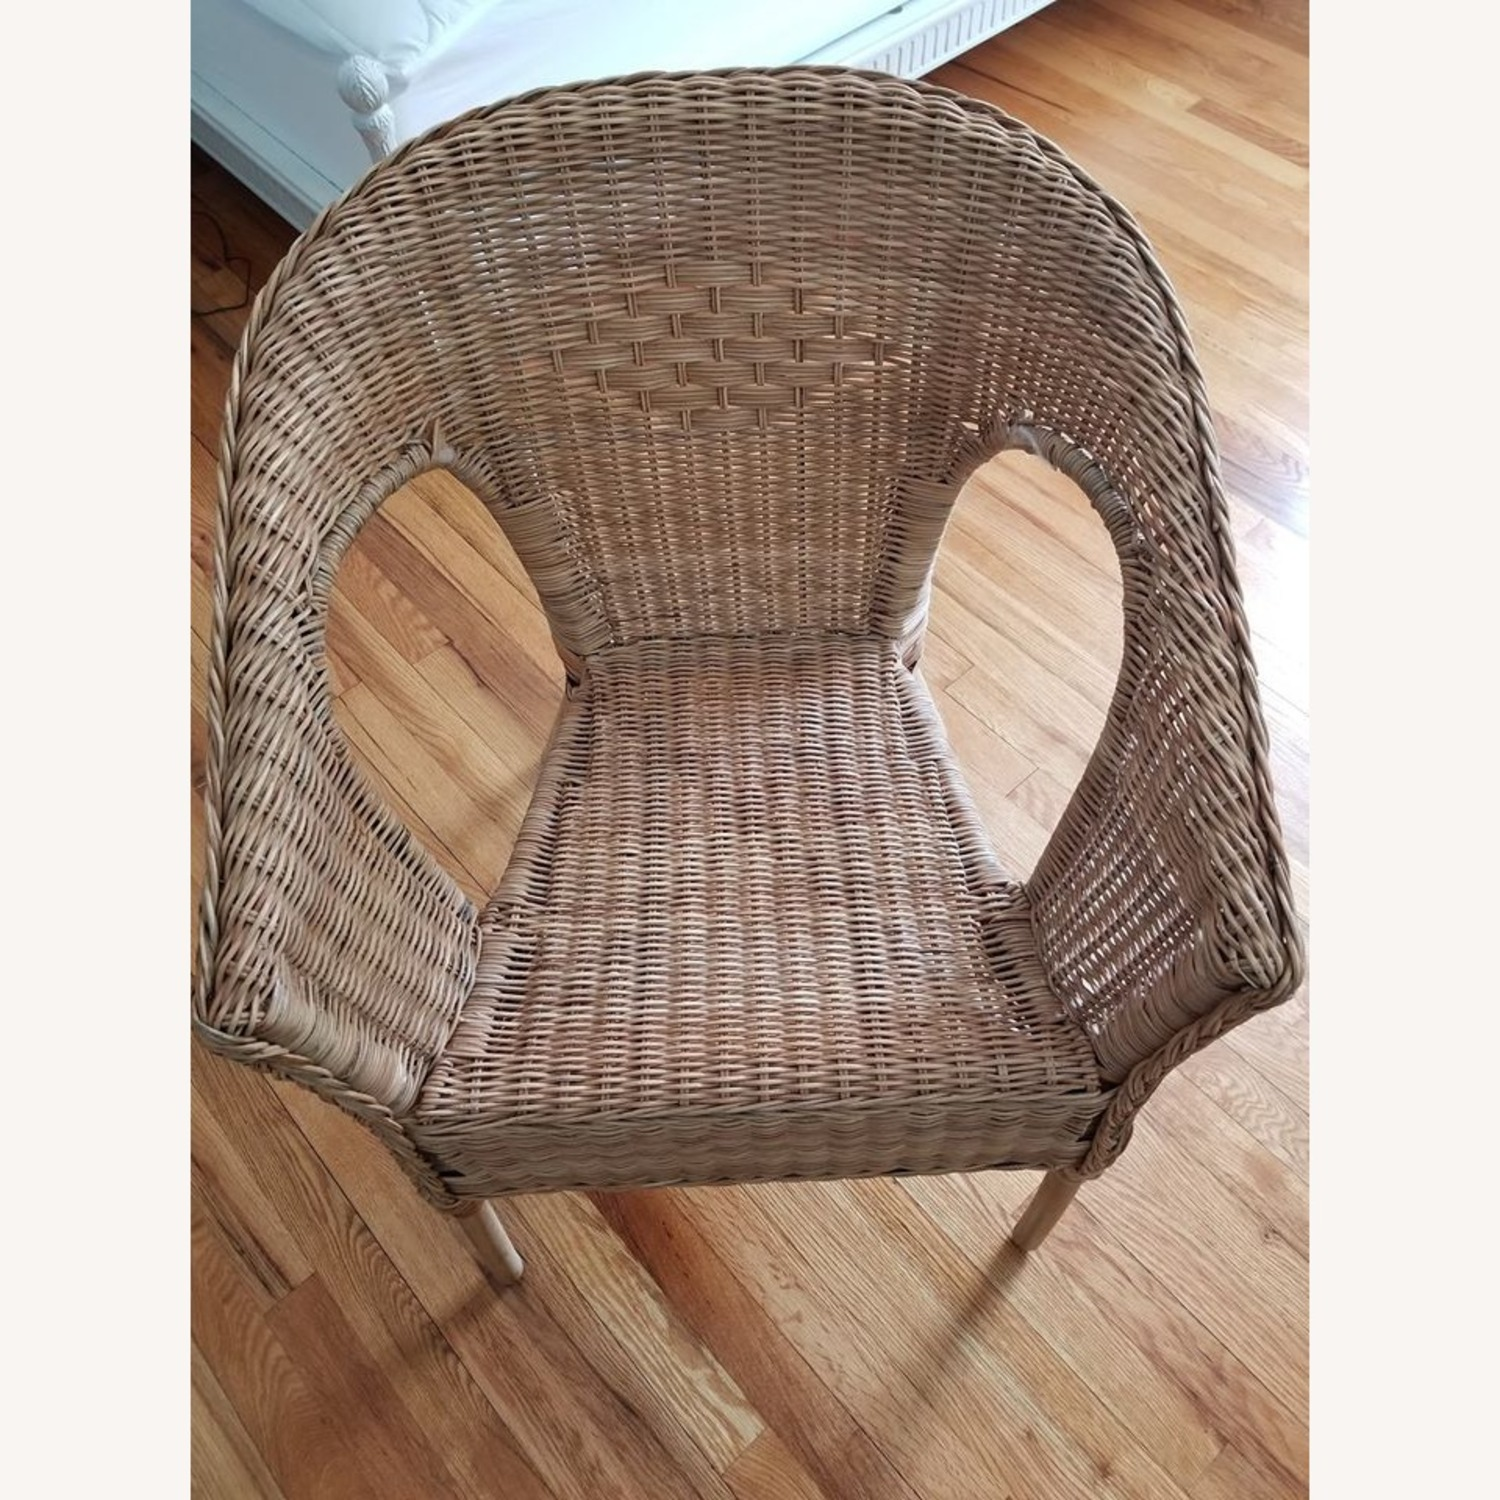 IKEA Rattan / Bamboo Accent Chair - image-2